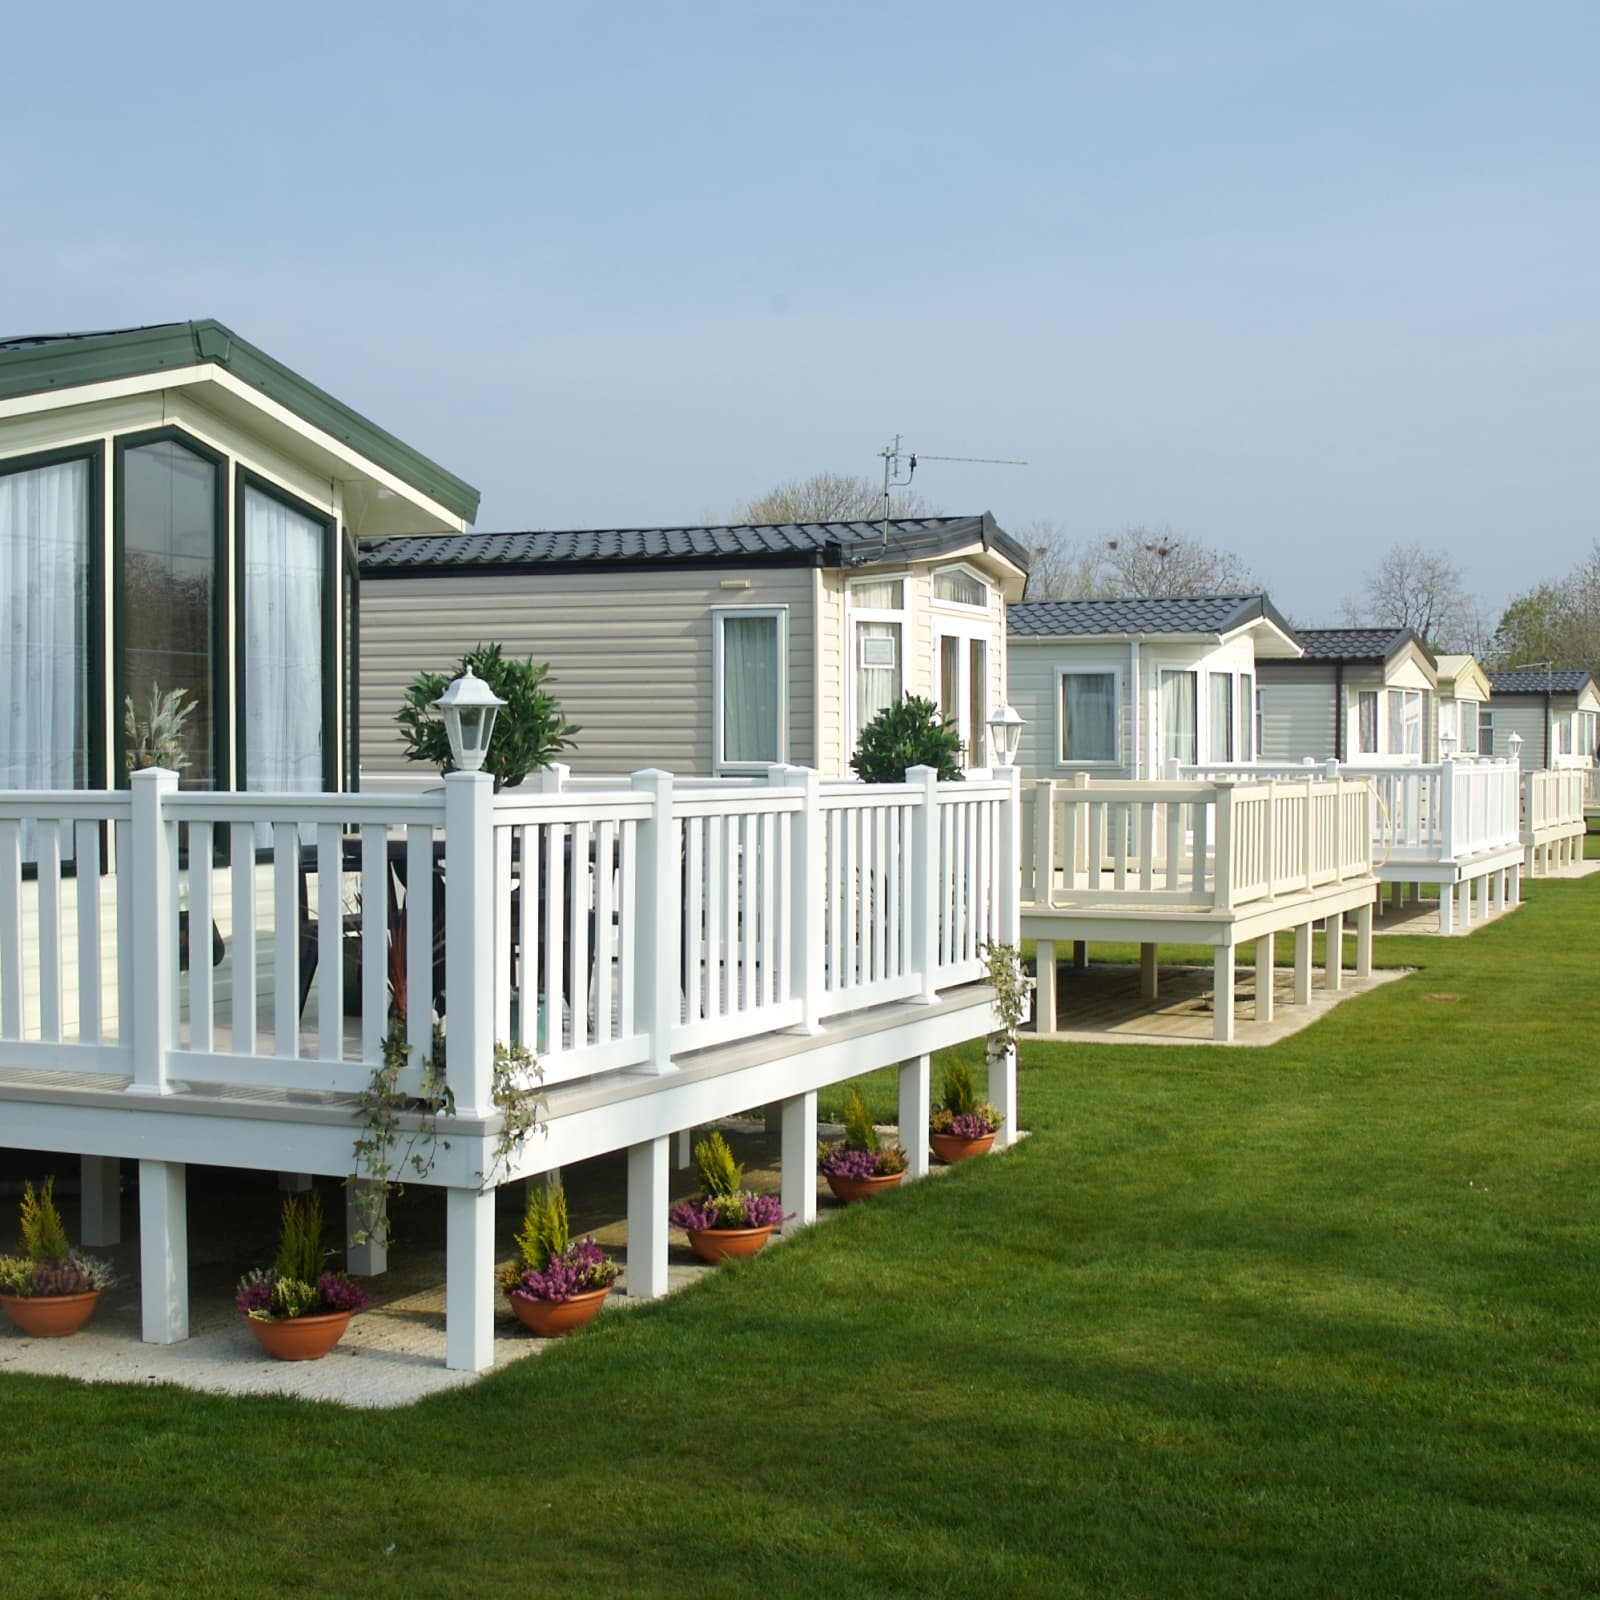 How To Find The Best Mobile Home Insurance Companies Valuepenguin